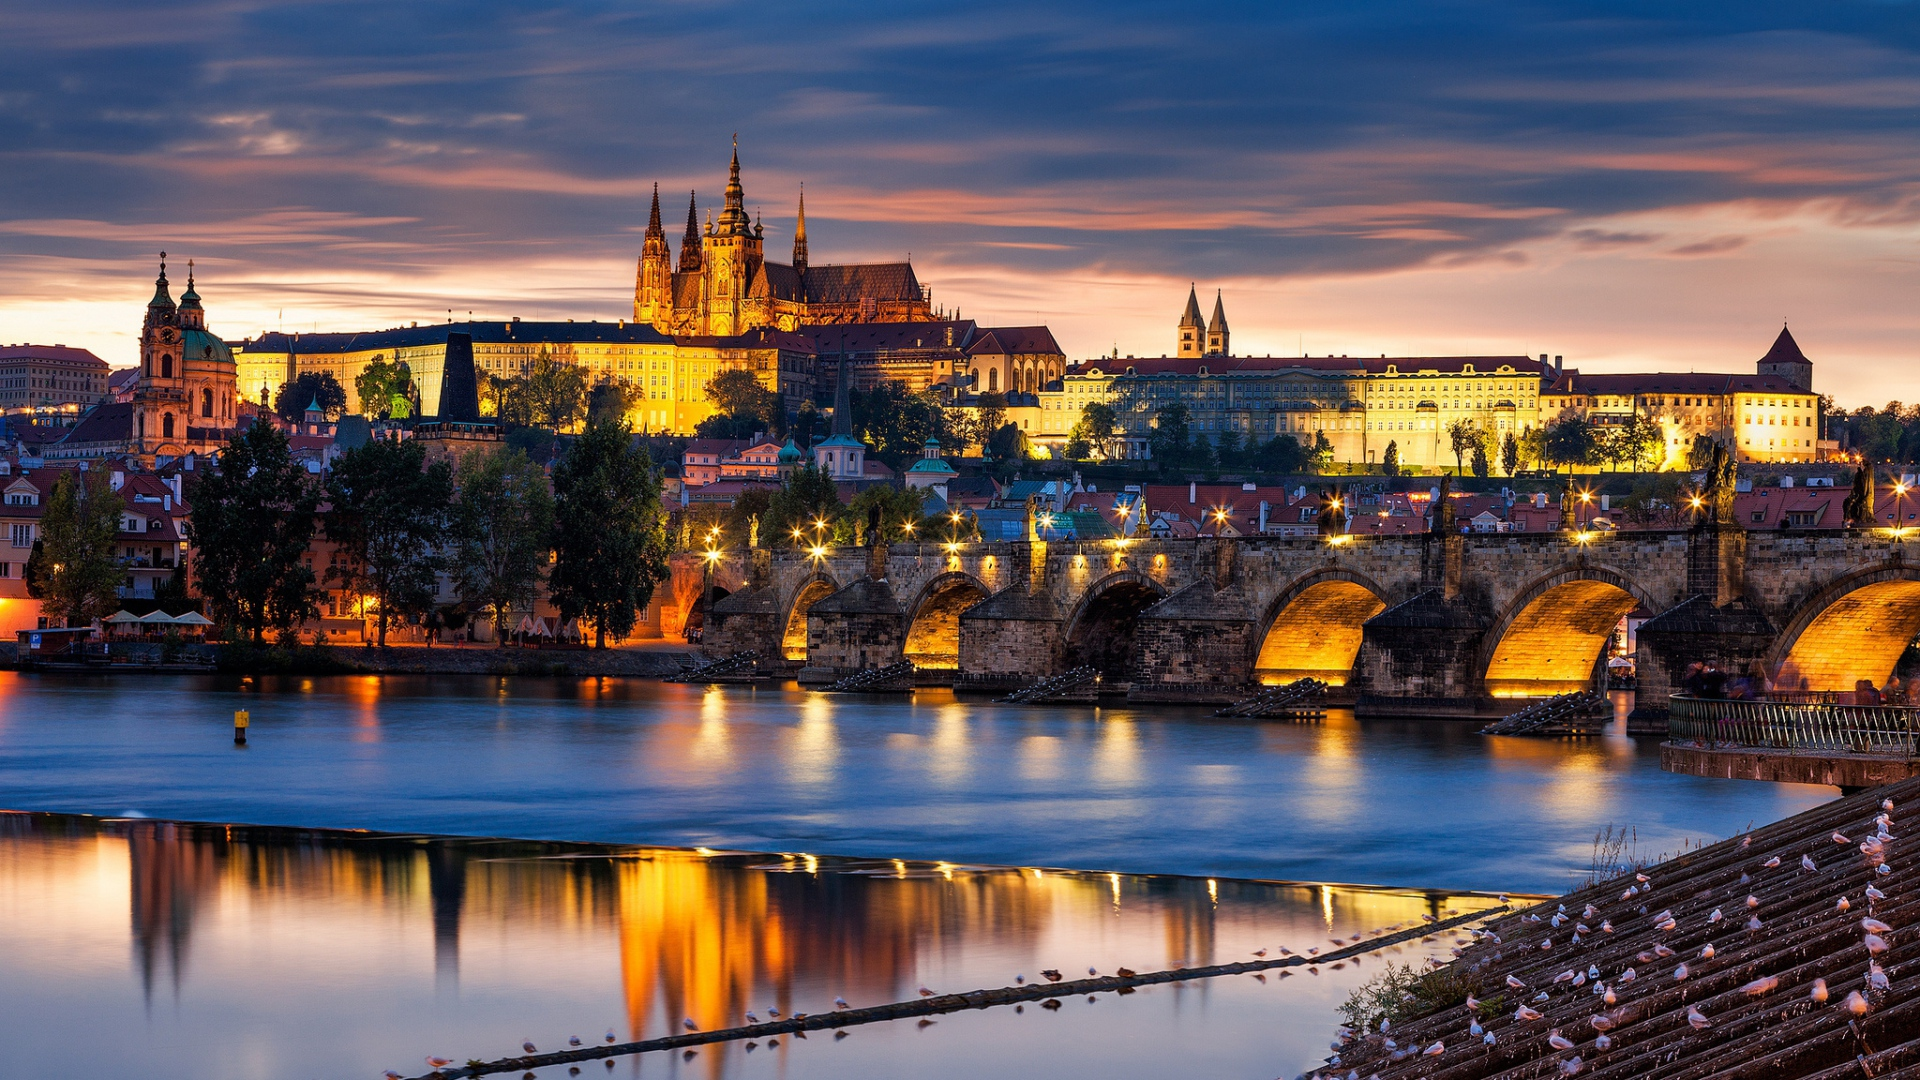 So My Best Friend is Moving to Prague